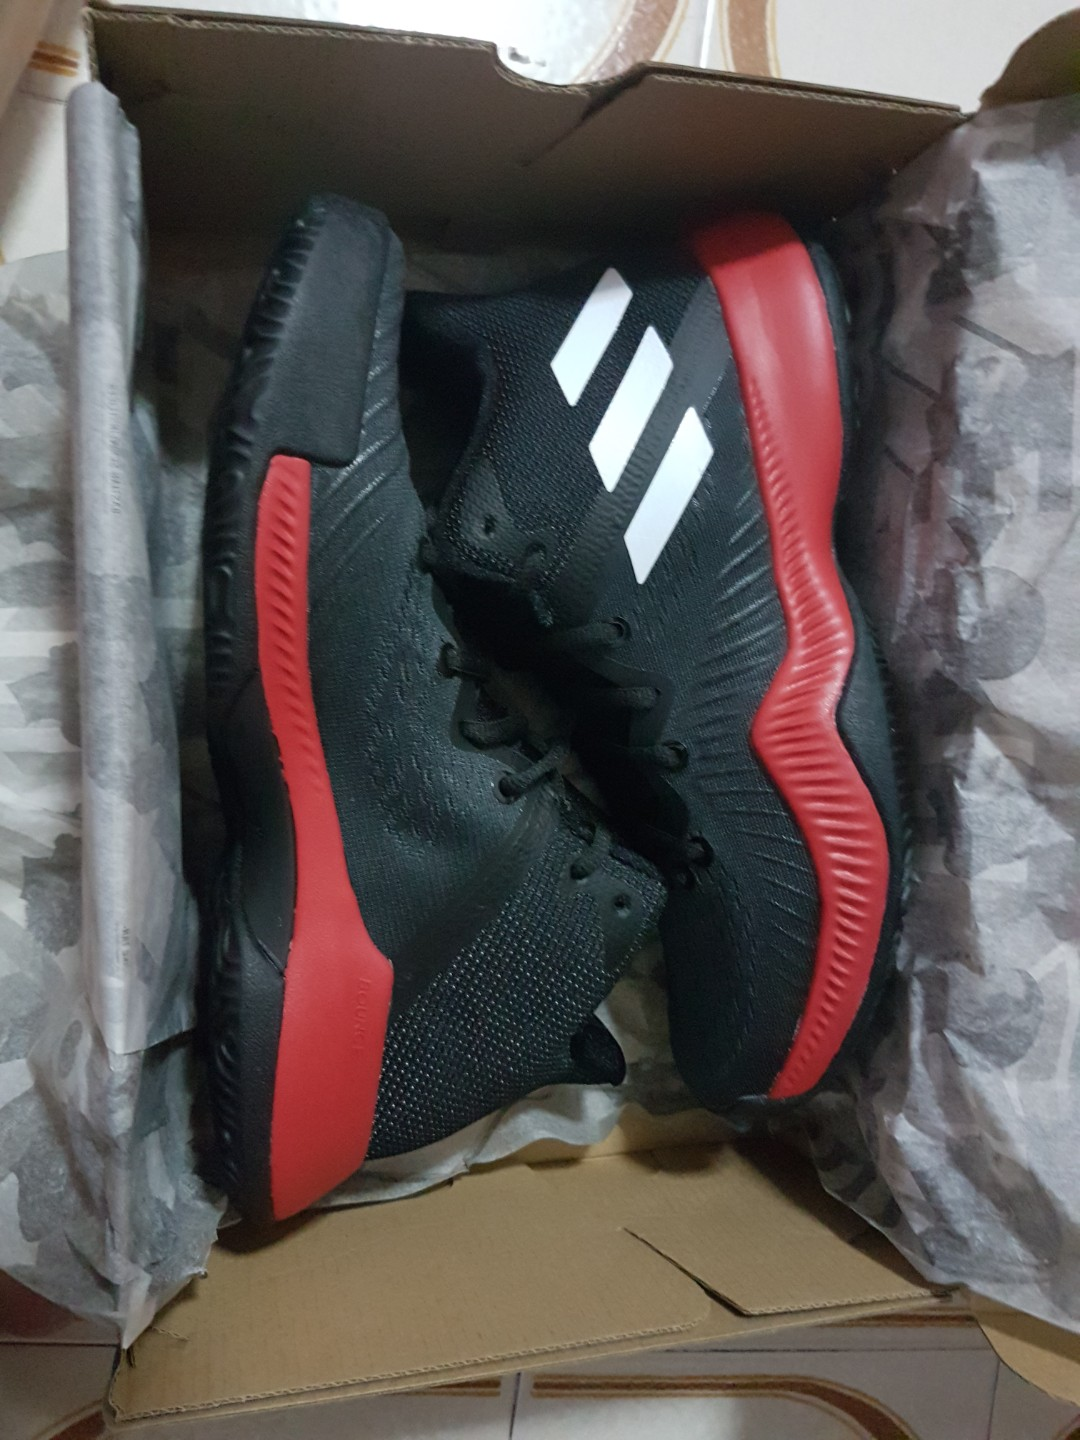 7dafa4f752fdd Adidas Mad Bounce Basketball Shoe